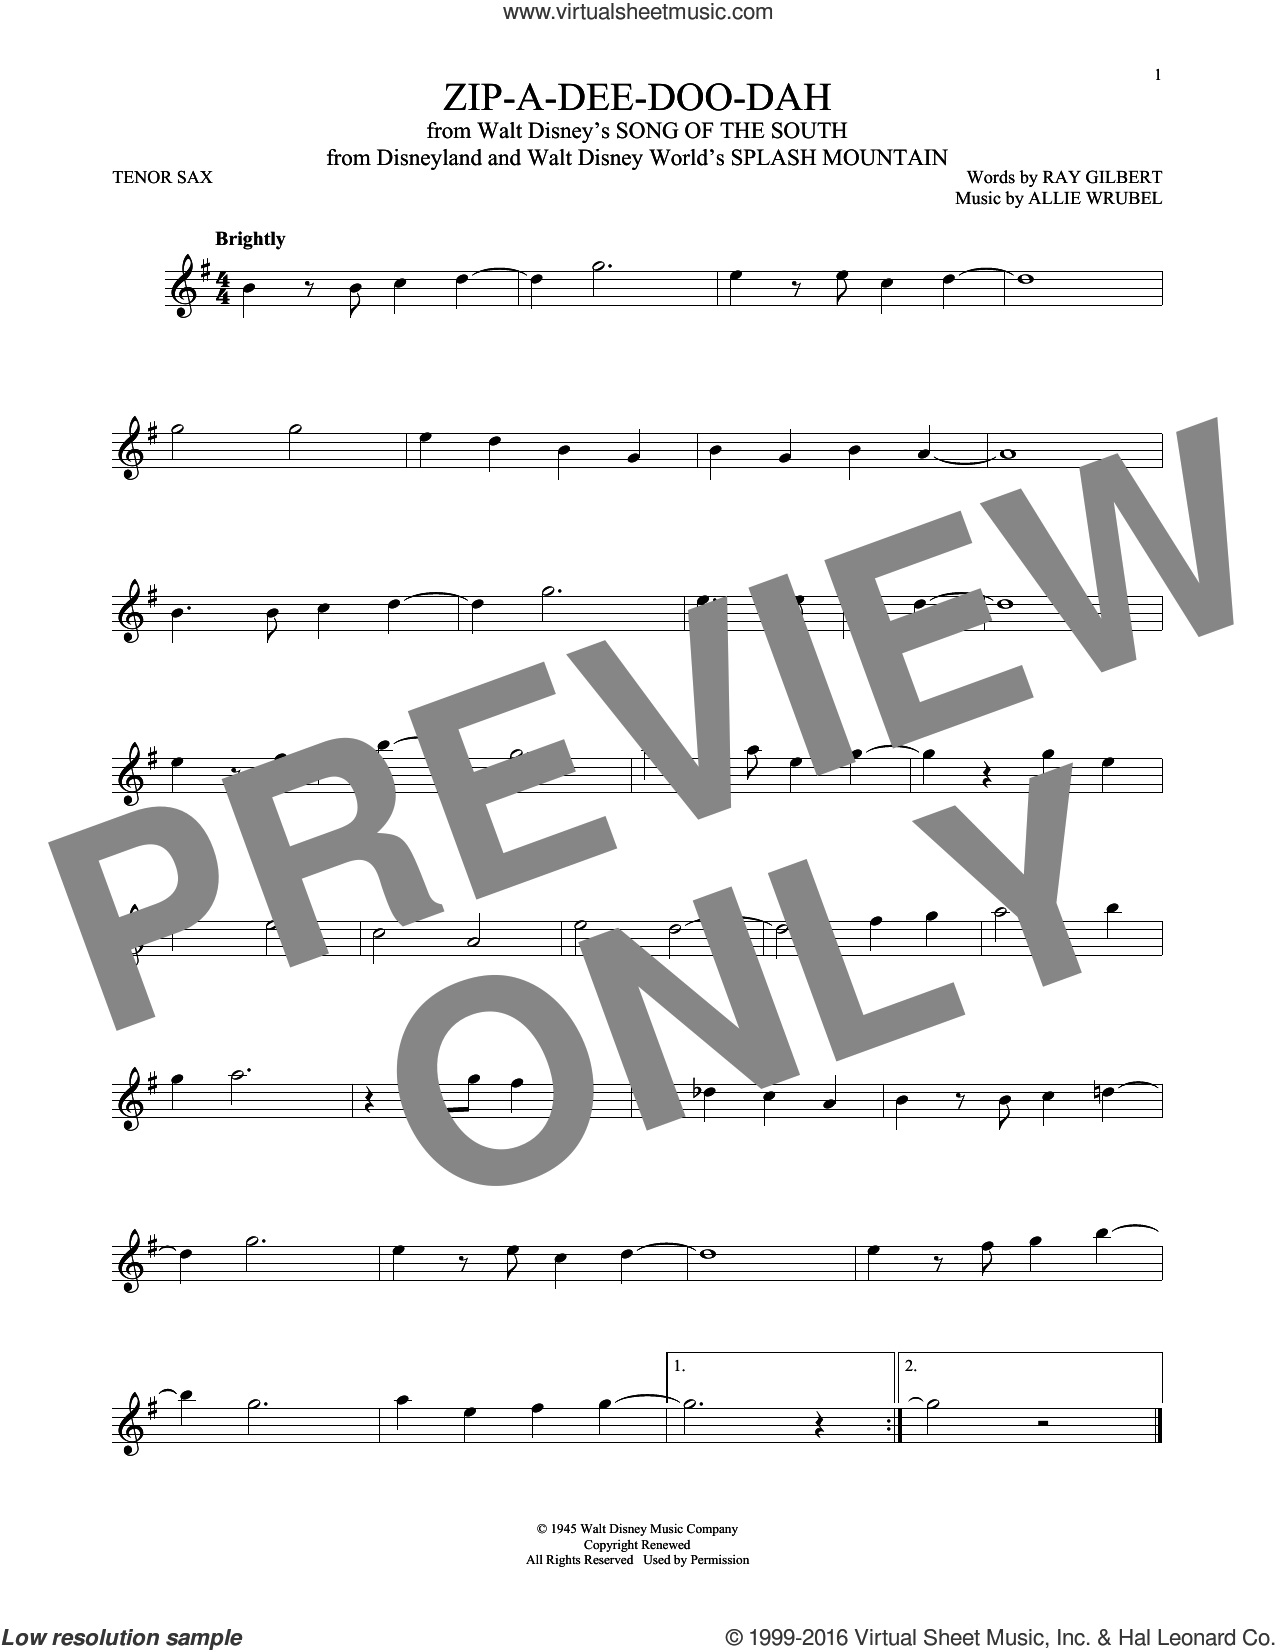 Zip-A-Dee-Doo-Dah sheet music for tenor saxophone solo by Ray Gilbert and Allie Wrubel, intermediate skill level